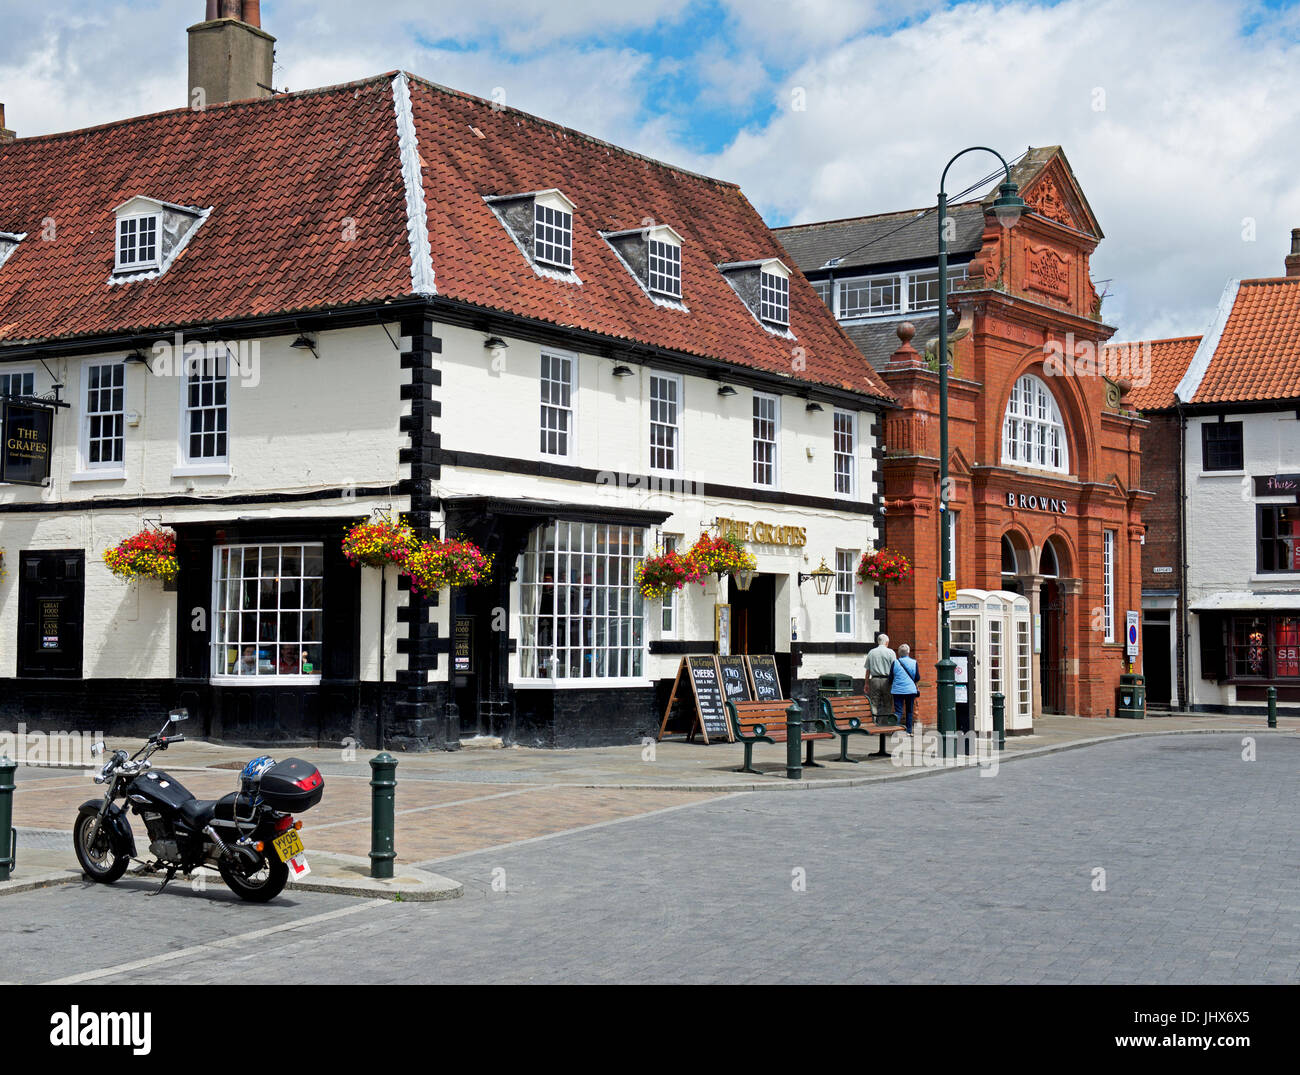 The Grapes pub in Beverley, East Yorkshire, England UK - Stock Image